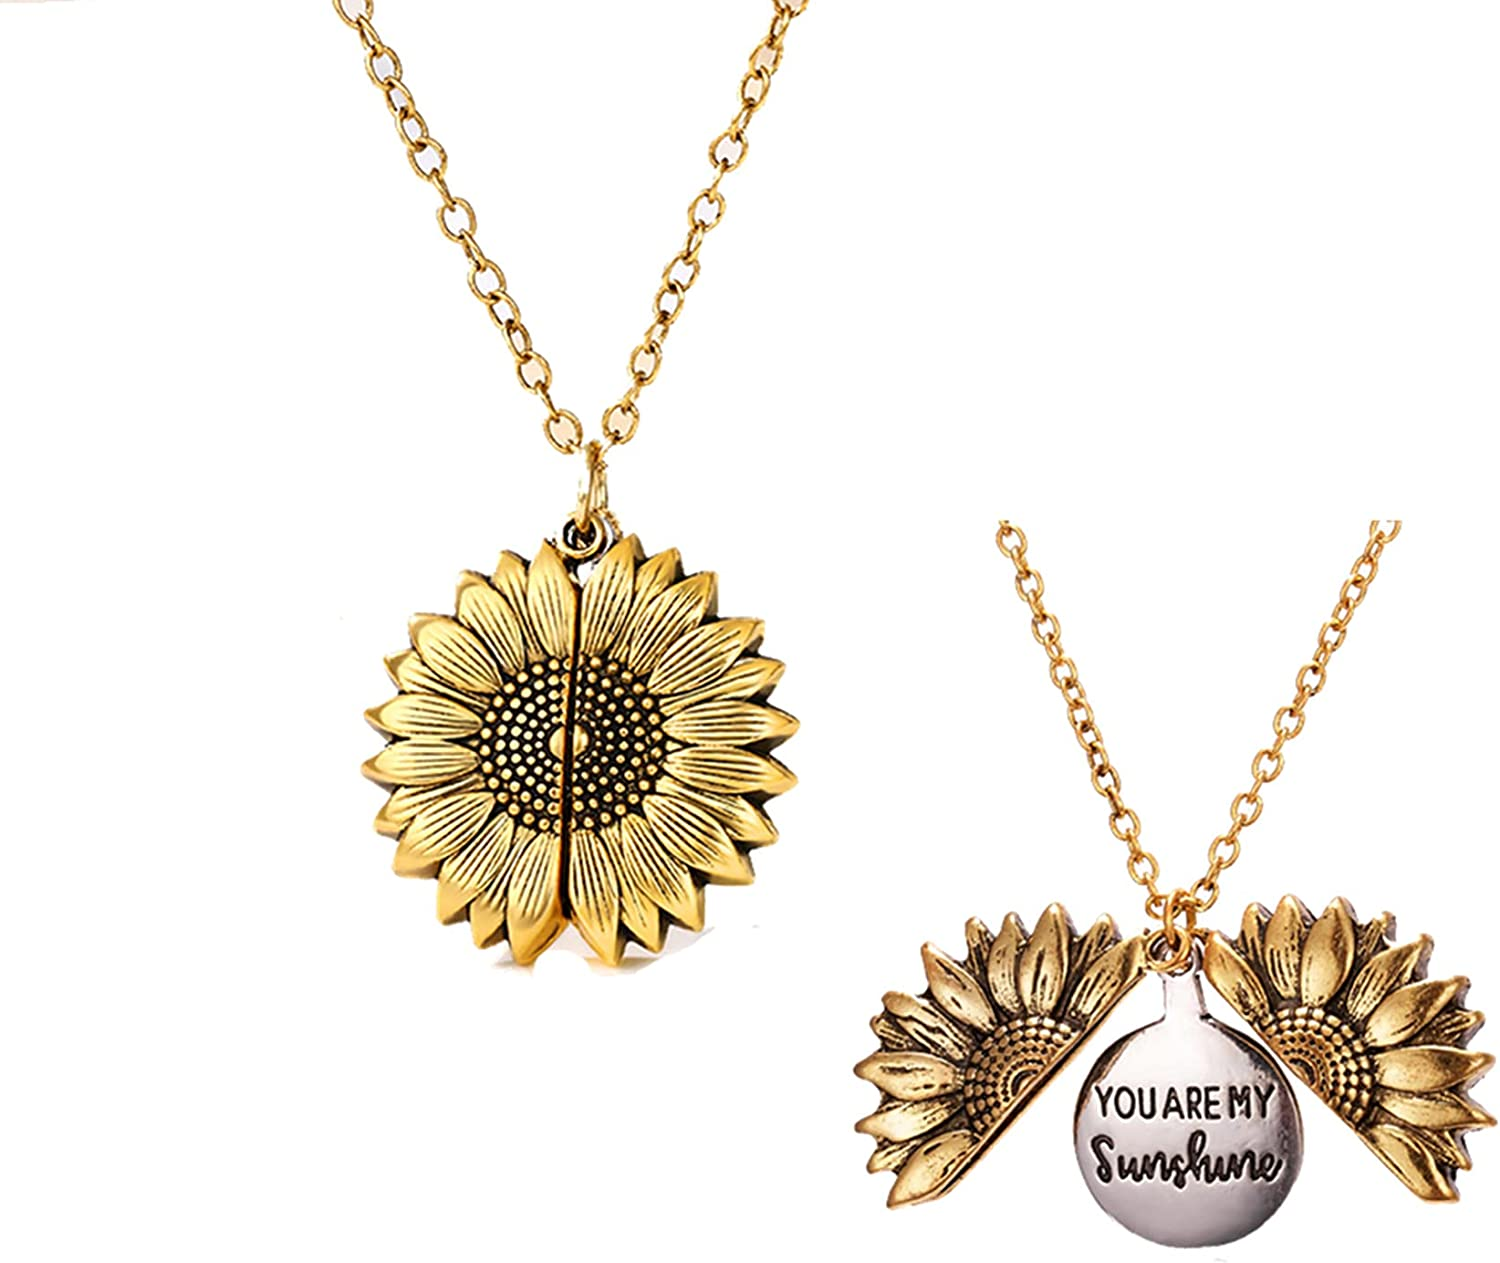 2pcs You Are My Sunshine Sunflower Necklaces for Women, Open Locket Long Chain Sun Flower Pendant Necklace Jewelry Gifts (Gold)